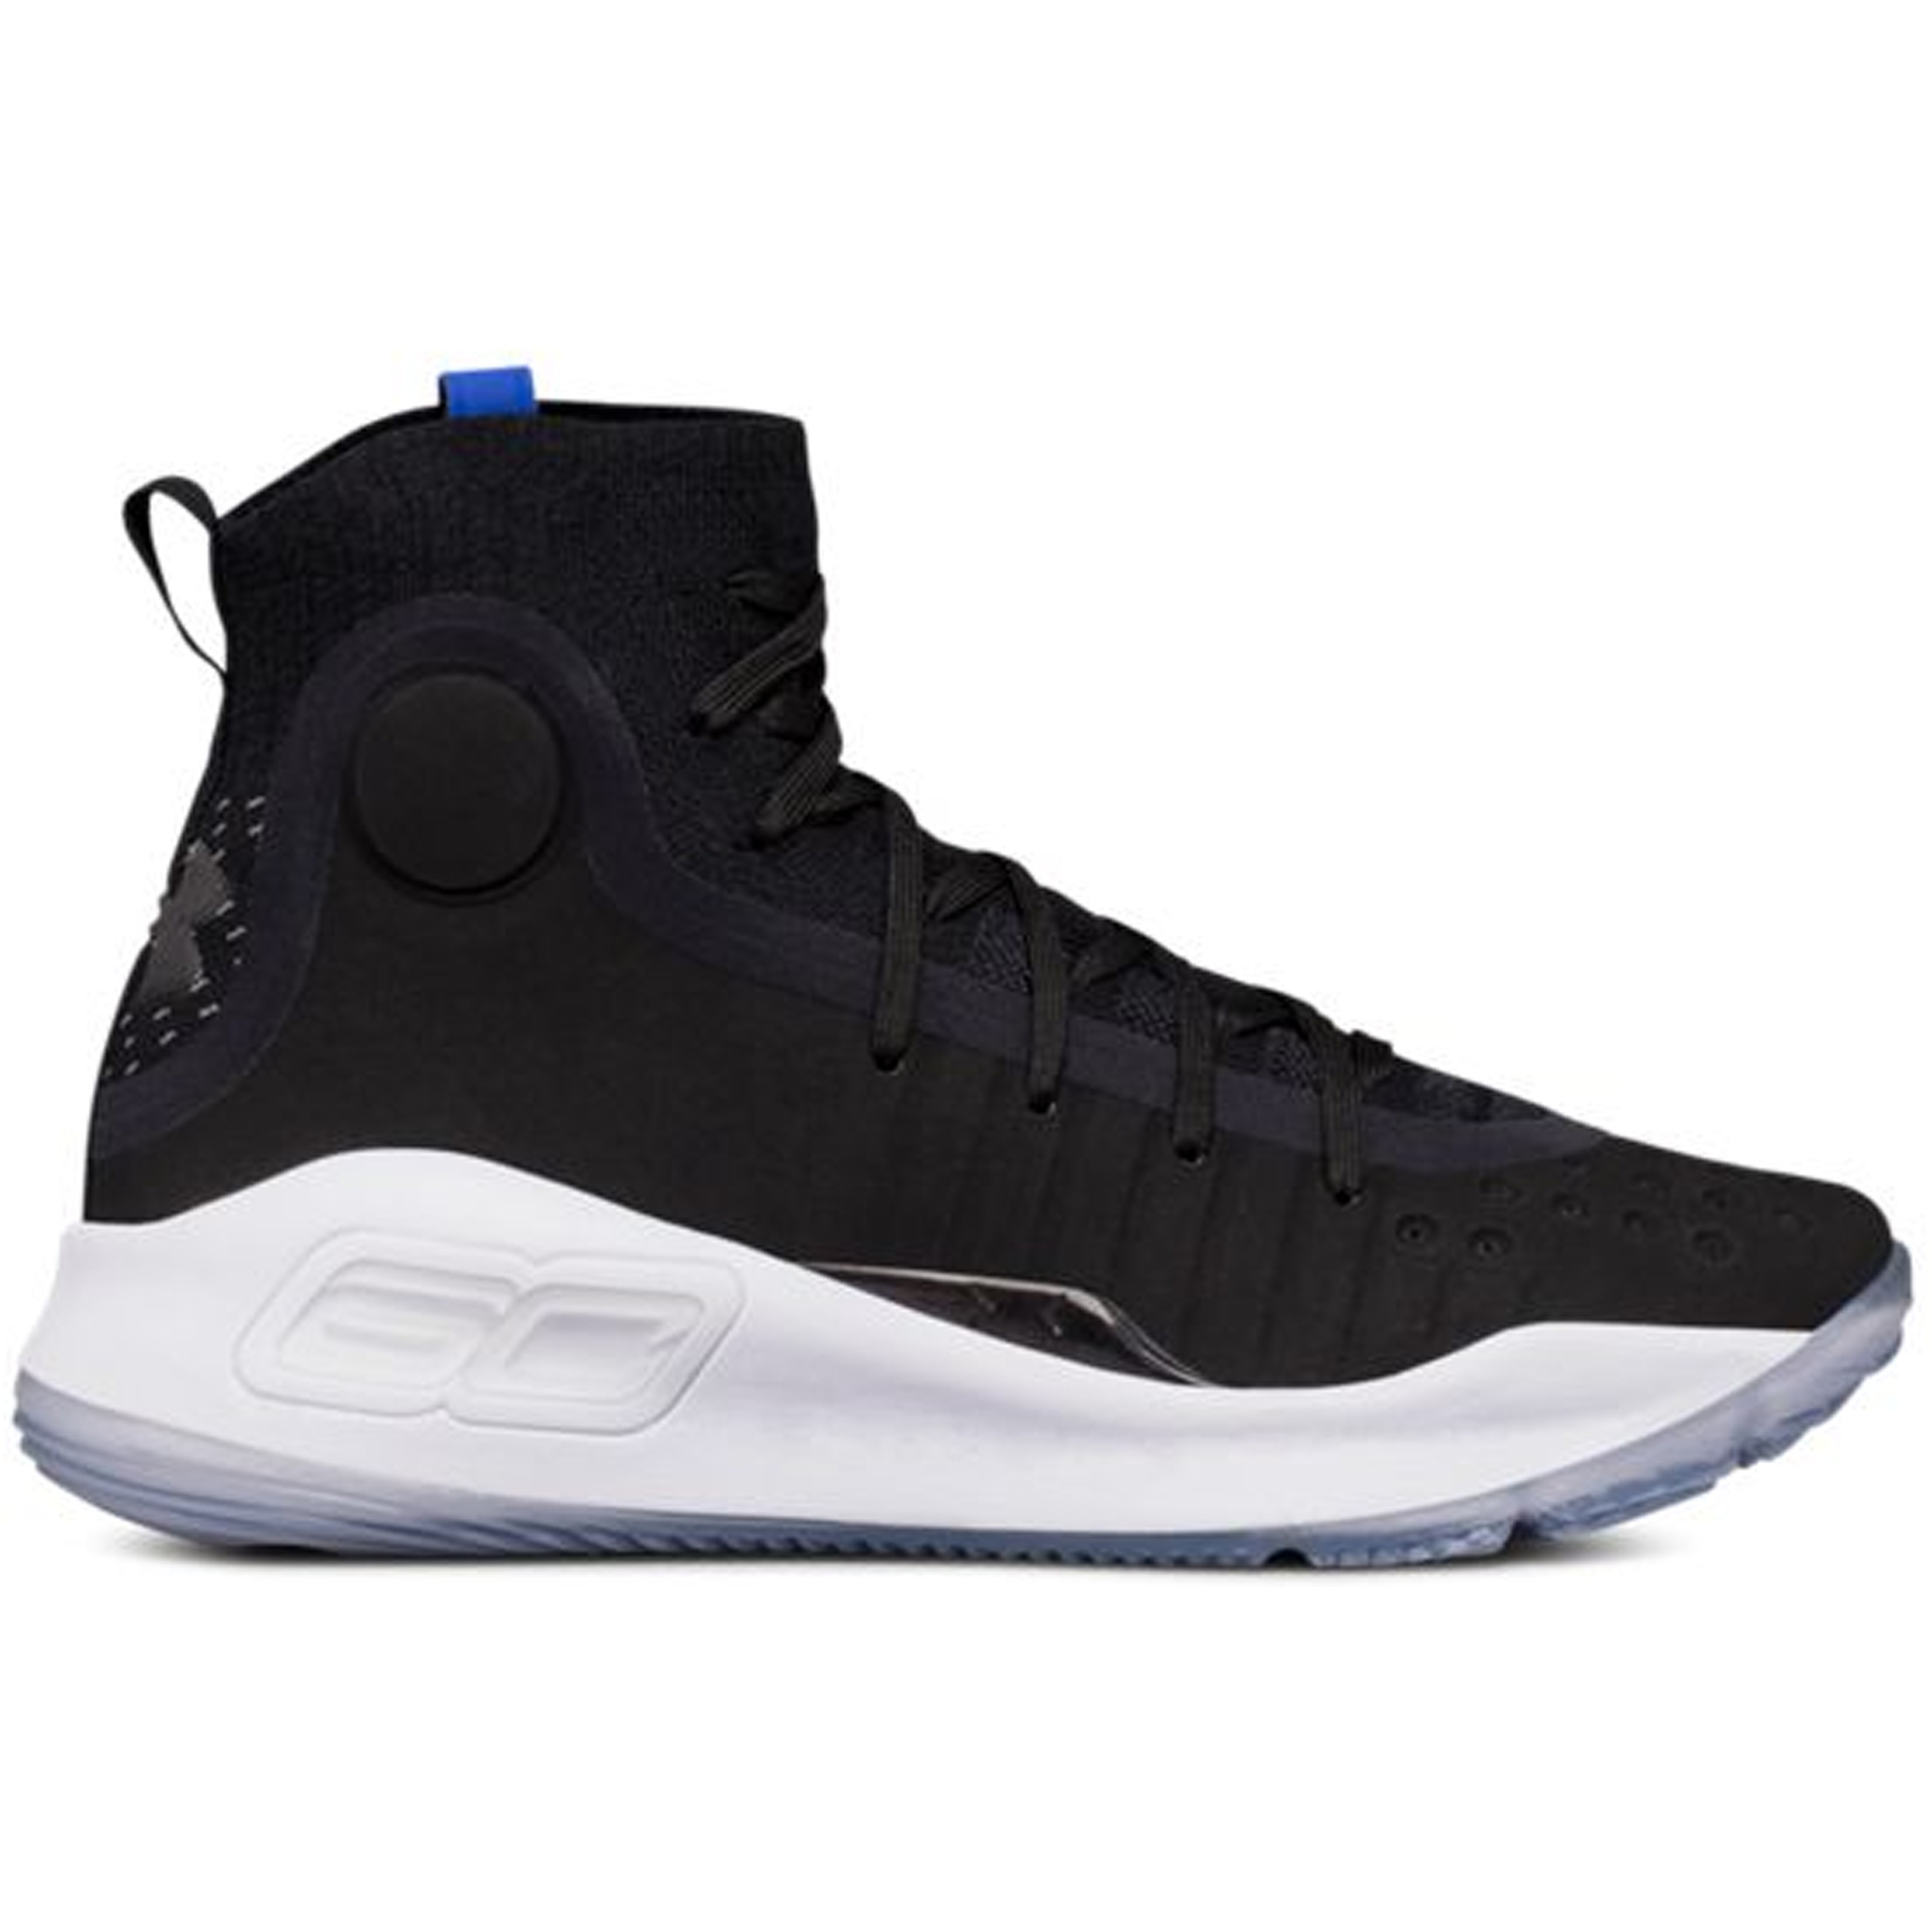 Under Armour Curry 4 Black White (GS) (1295995-005)